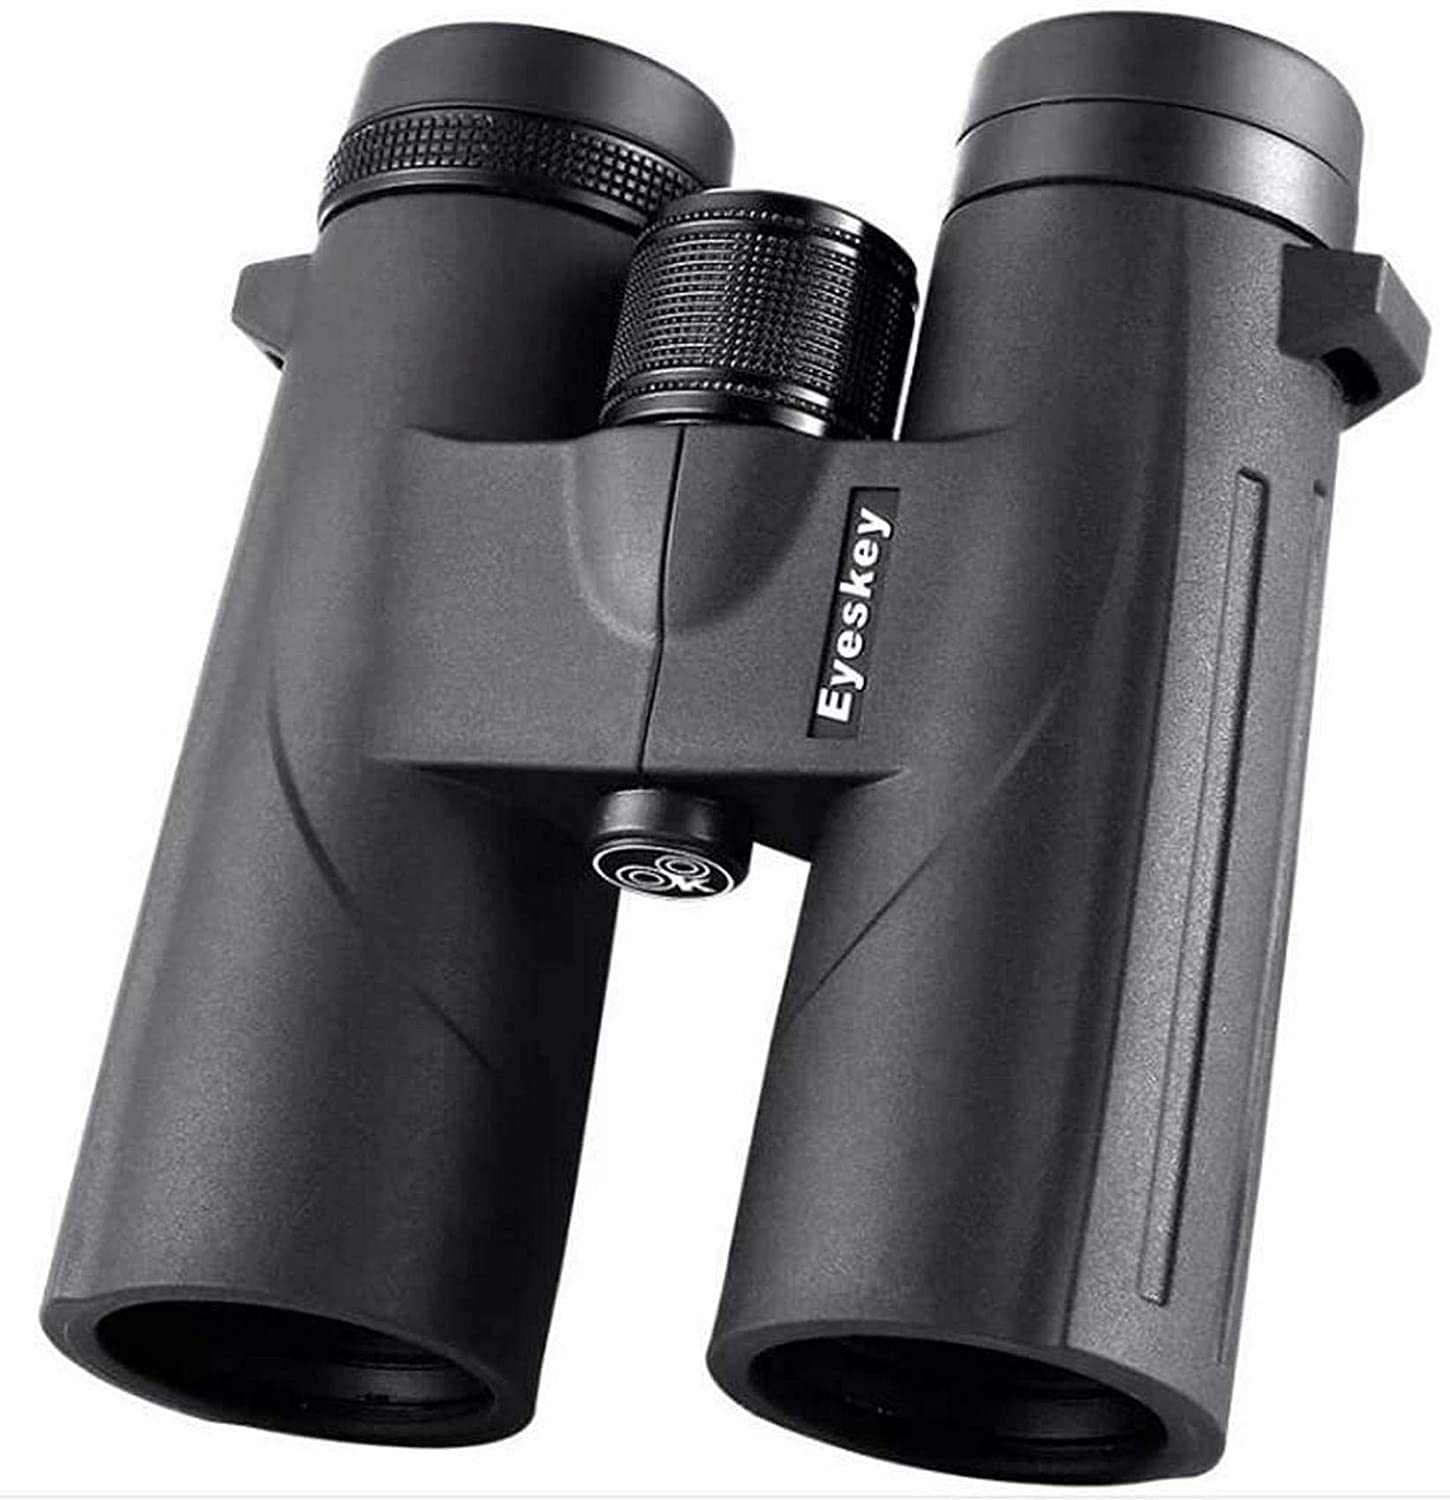 IW.HLMF 10×50 Binoculars for Adult Large 67% OFF of fixed price Eye Max 87% OFF Alloy HD Magnesium